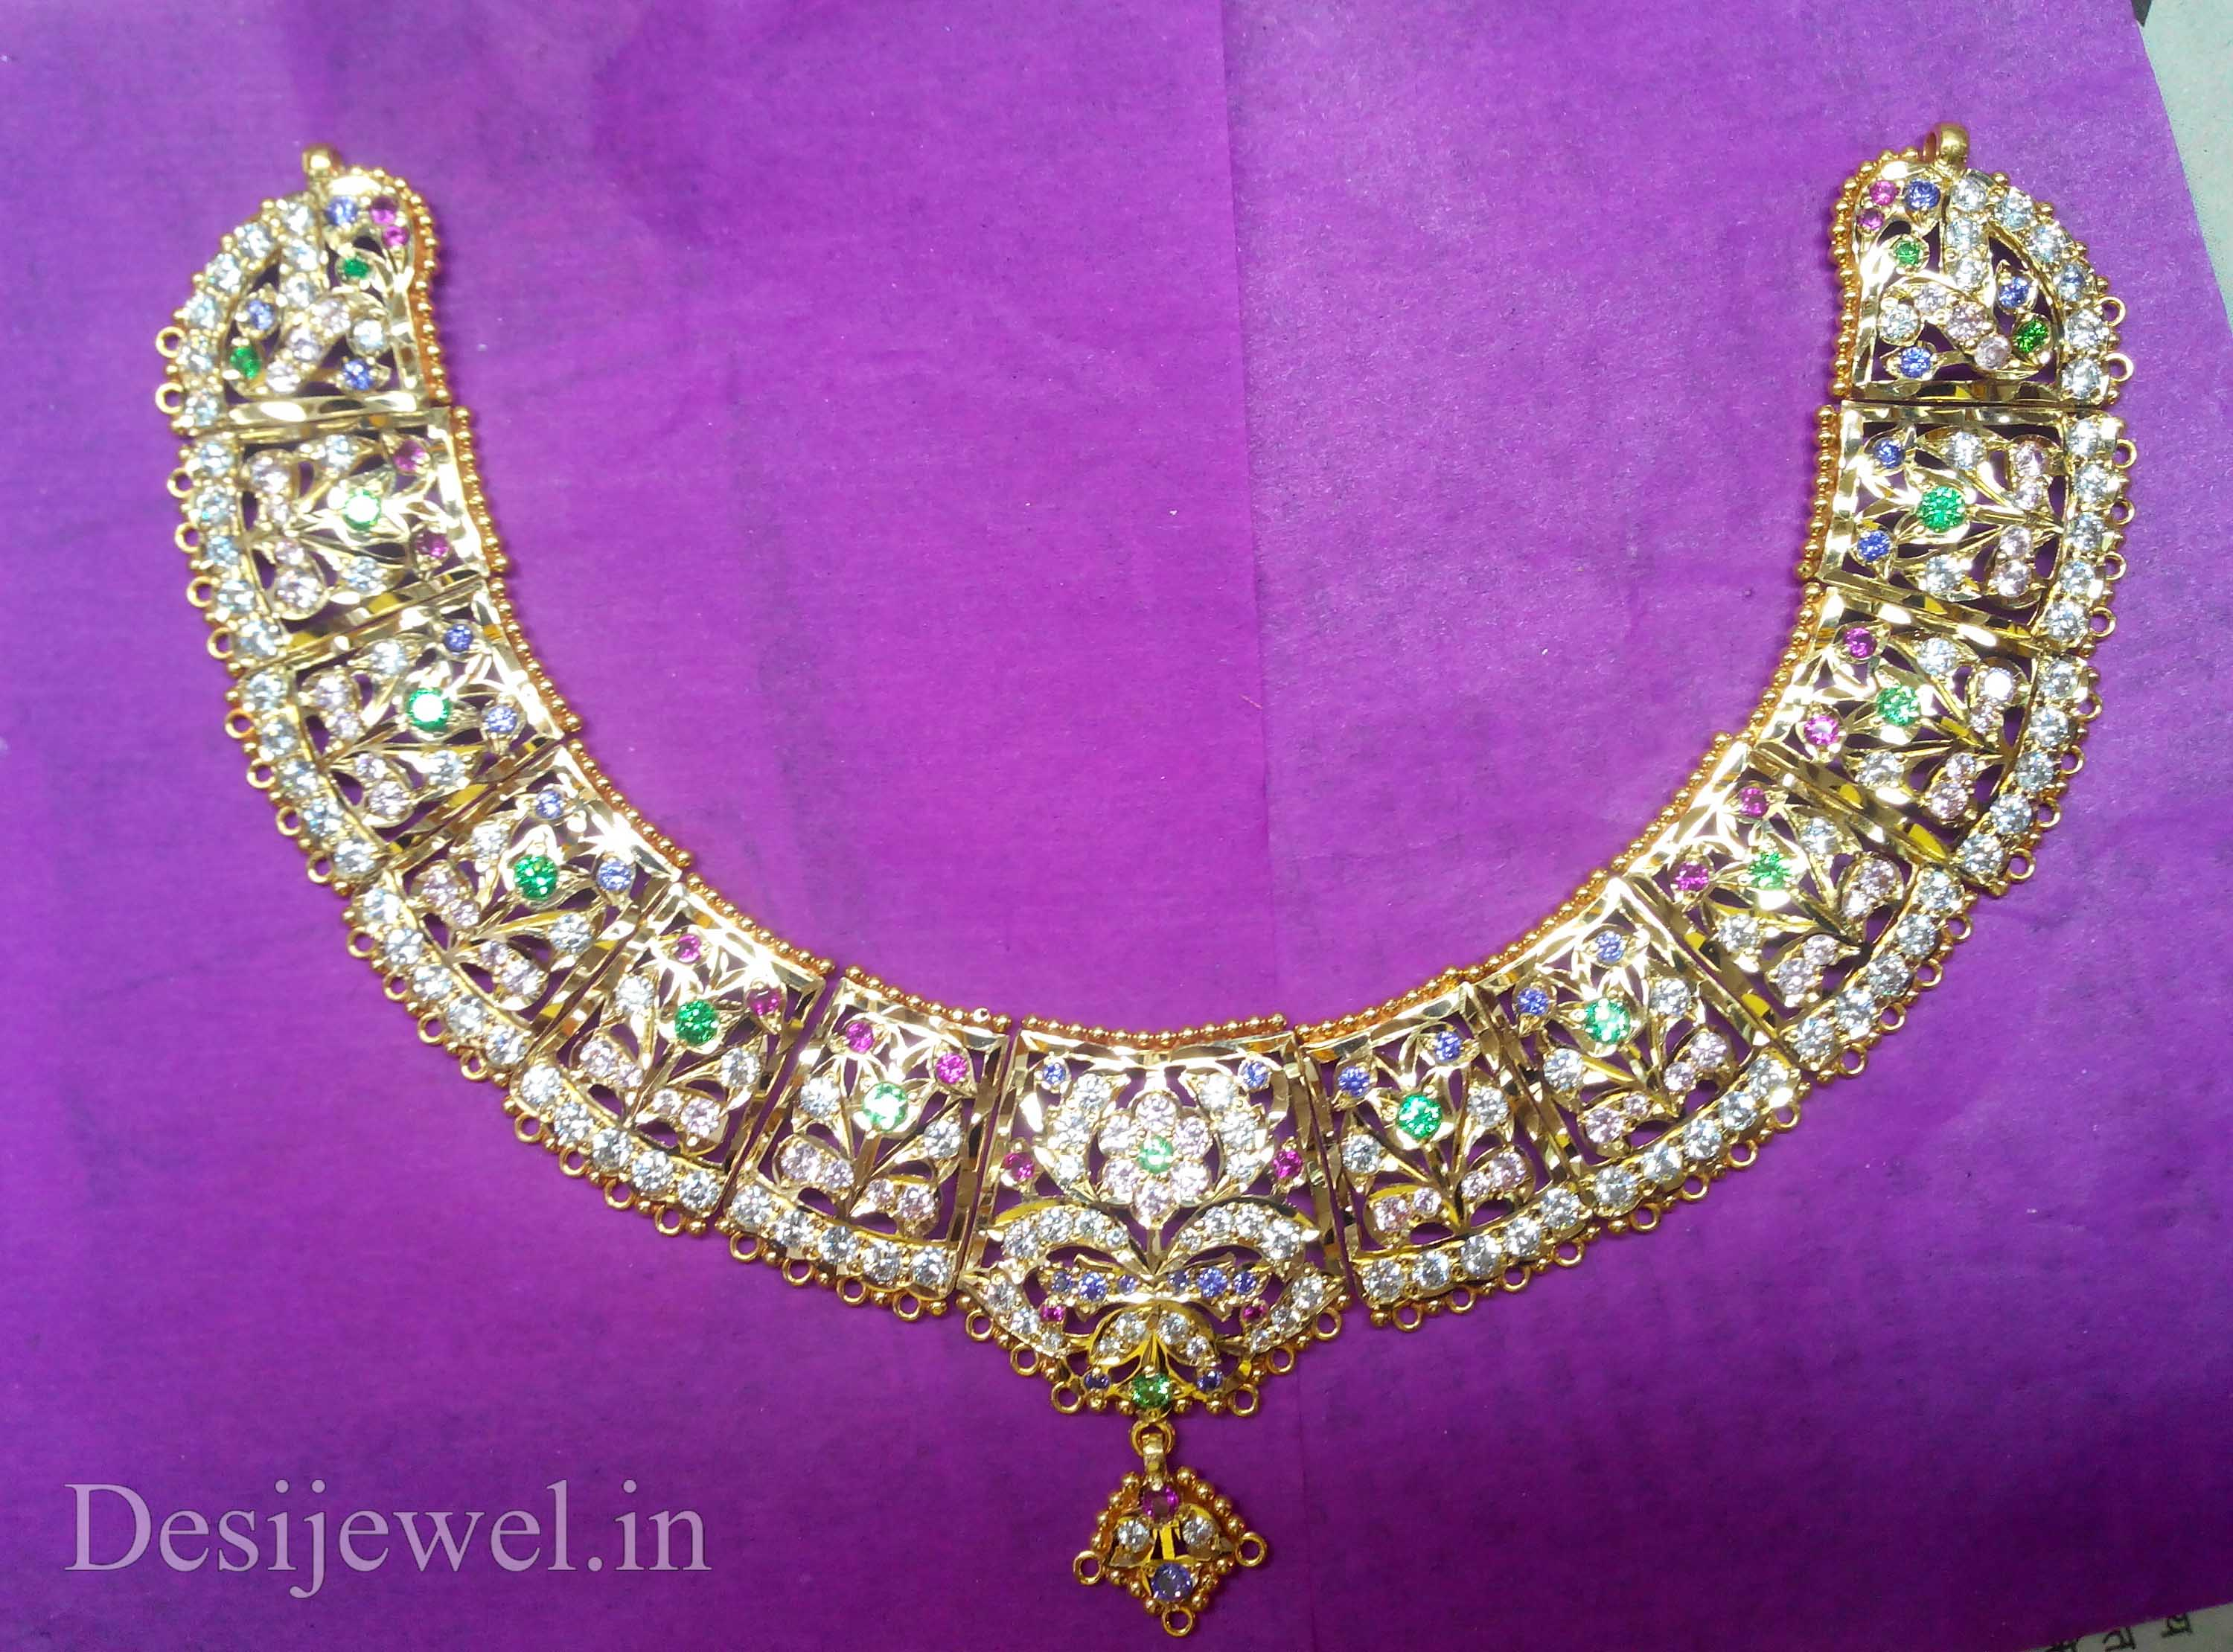 Marwadi Rajasthani Desi gold Necklace And Weight is 40-42 gm